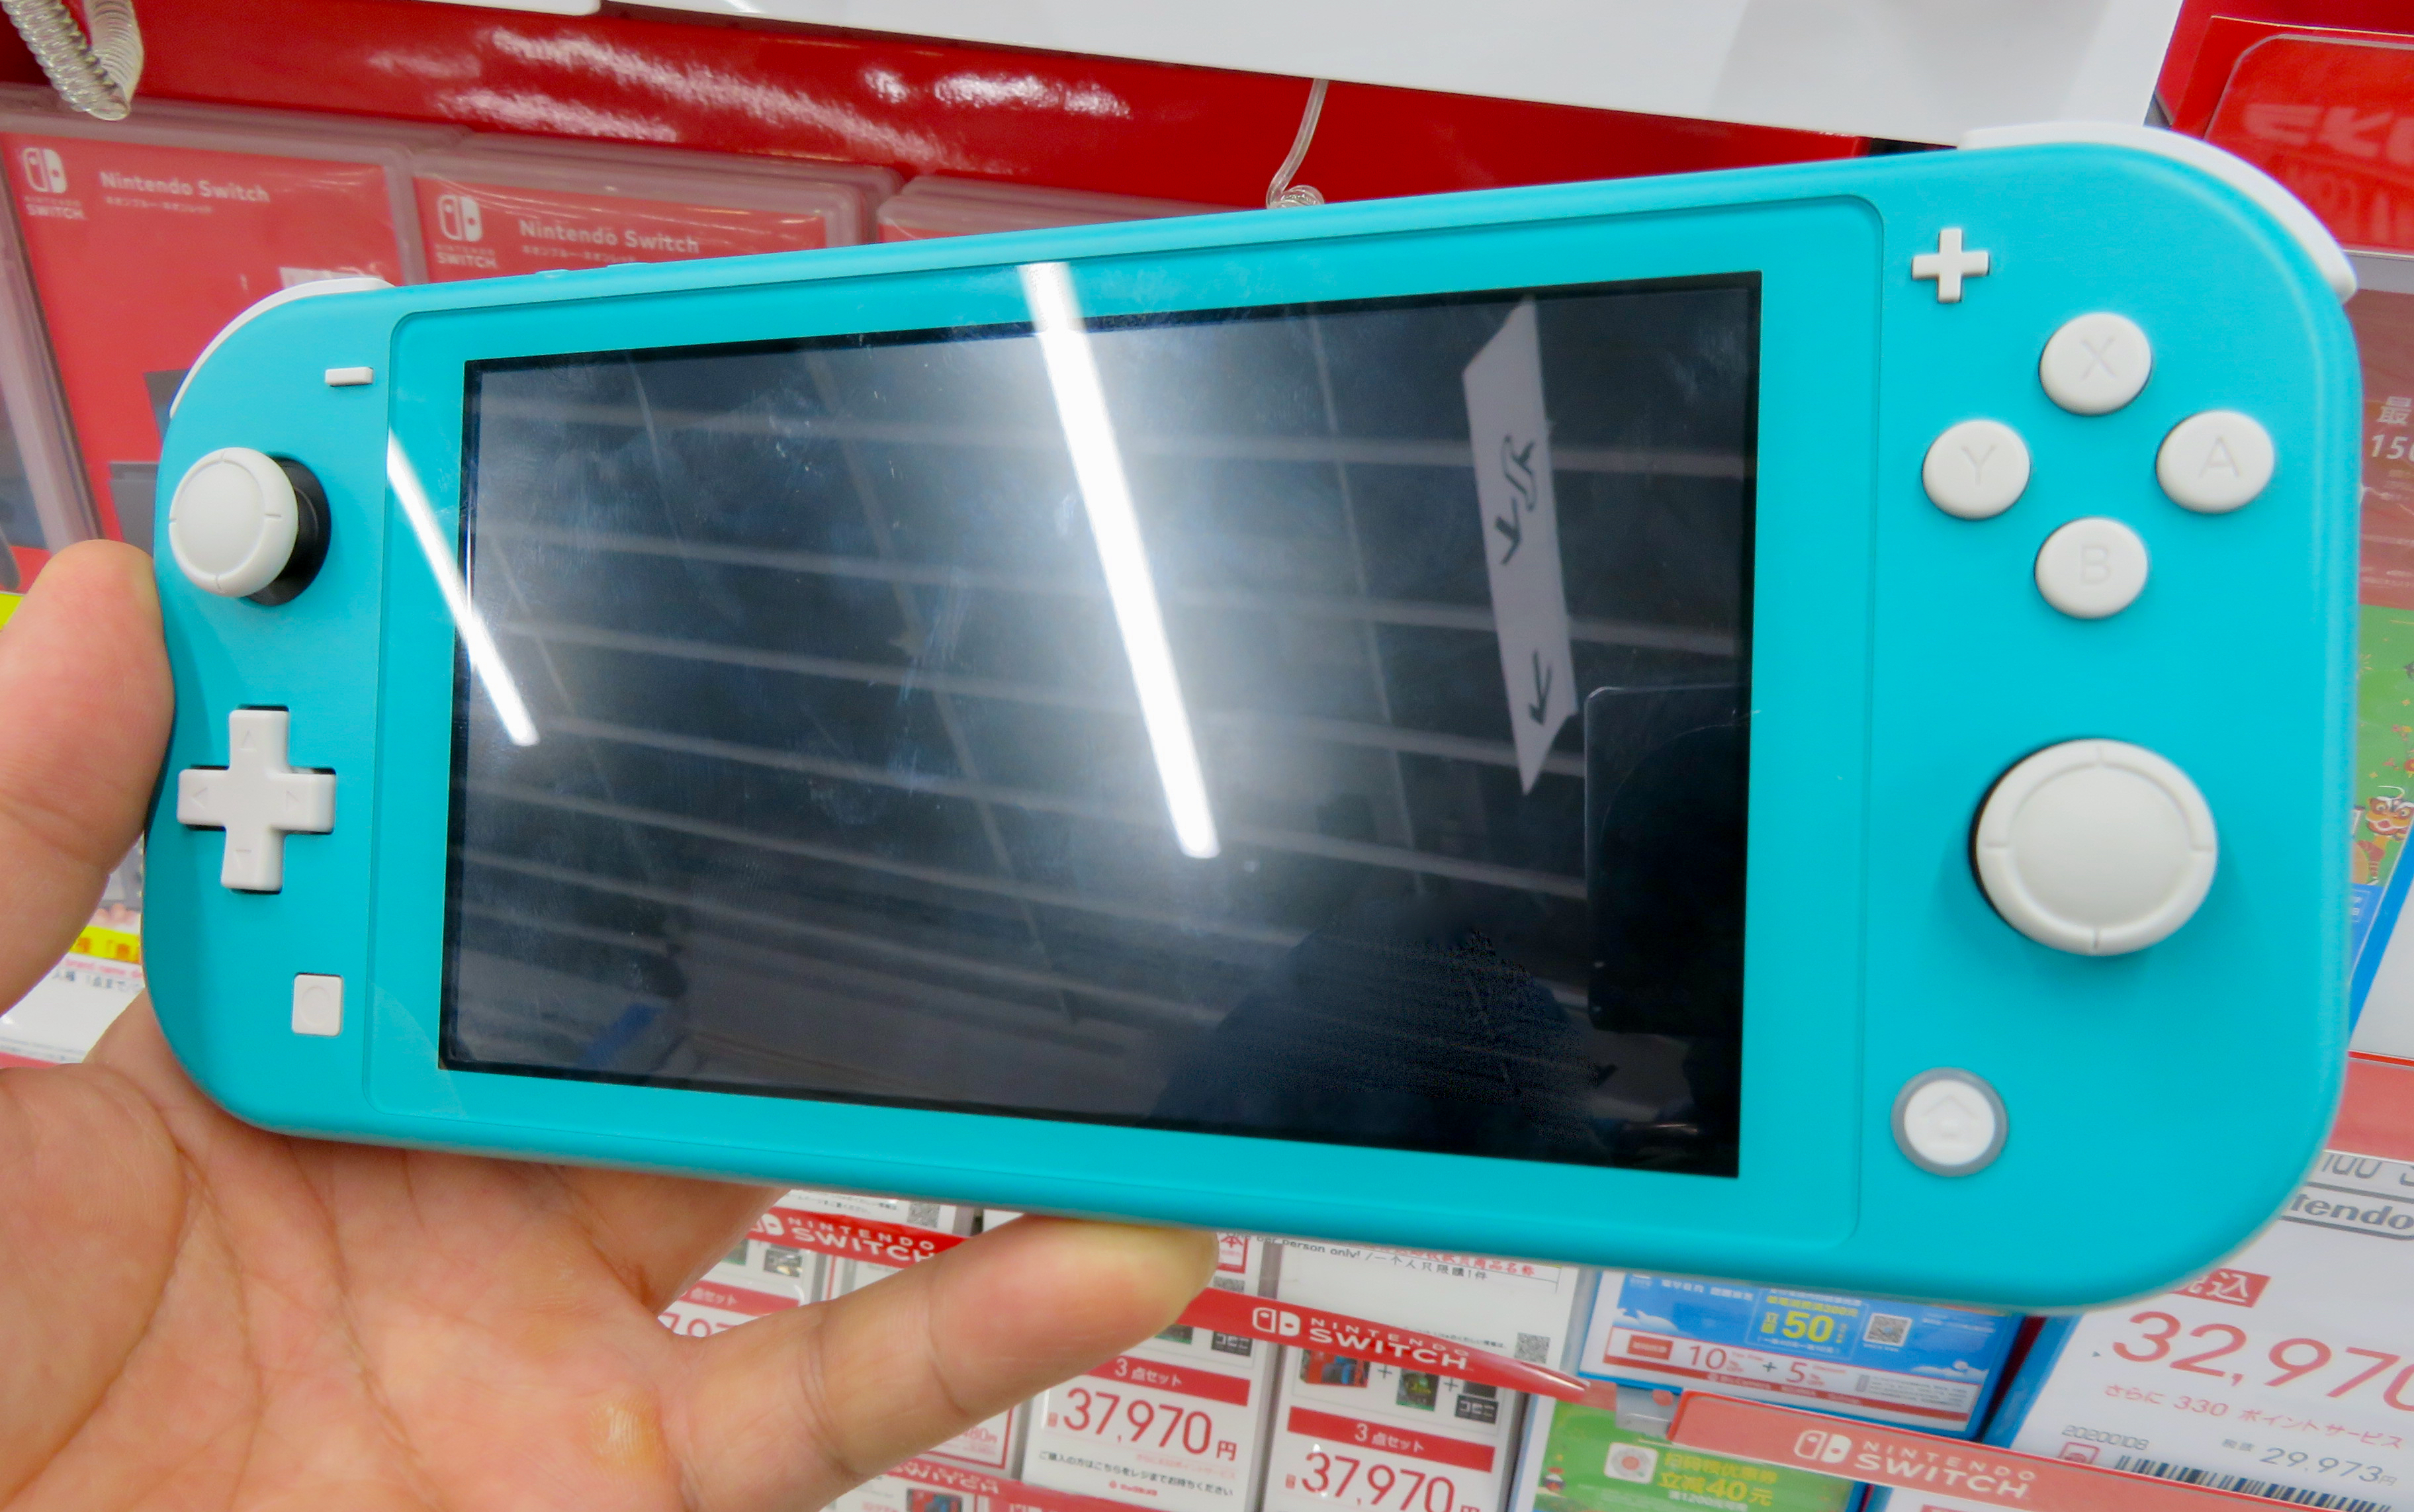 File:Nintendo Switch Lite (turquoise) - 1.jpg - Wikimedia Commons